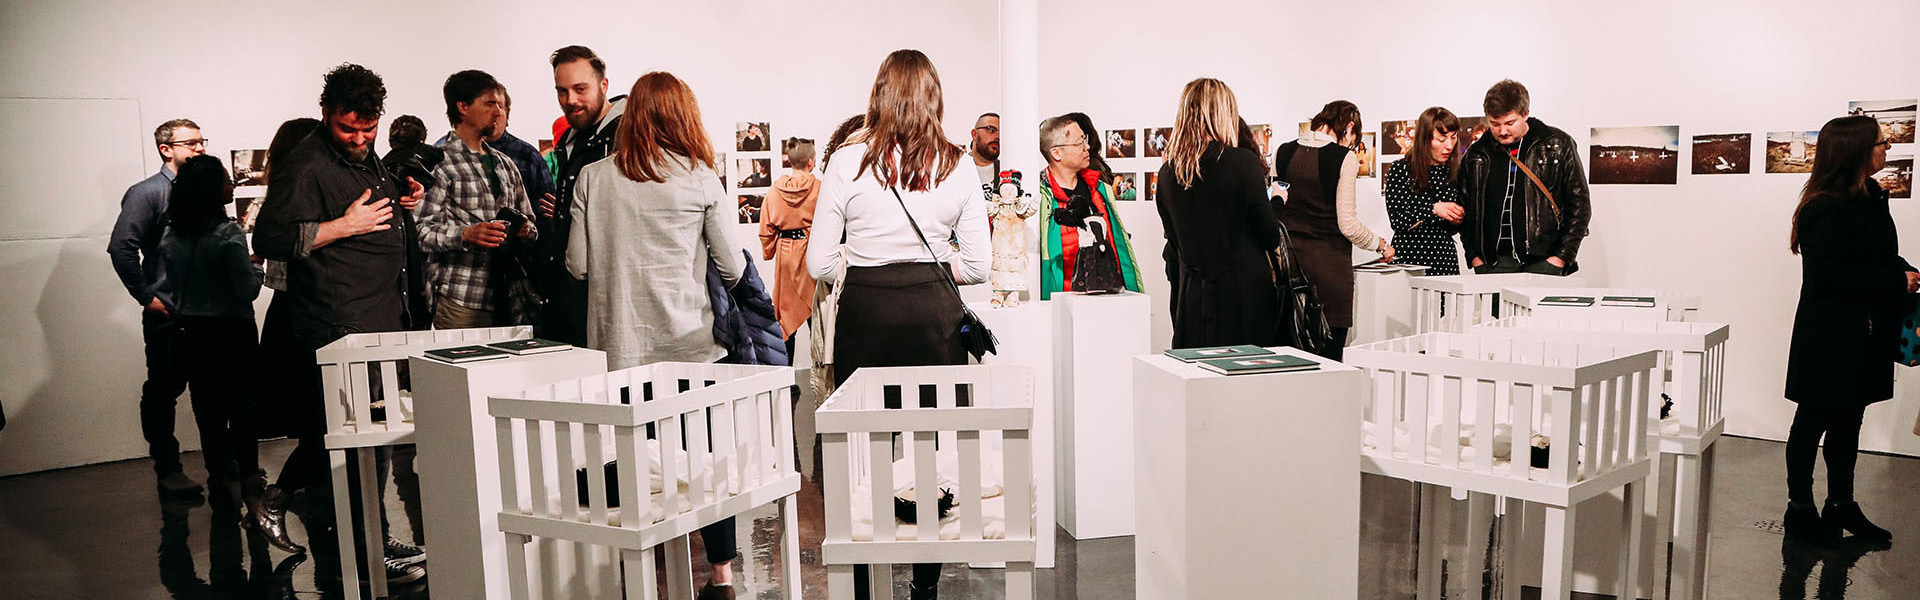 A small crowd of people viewing art on walls and in displays.